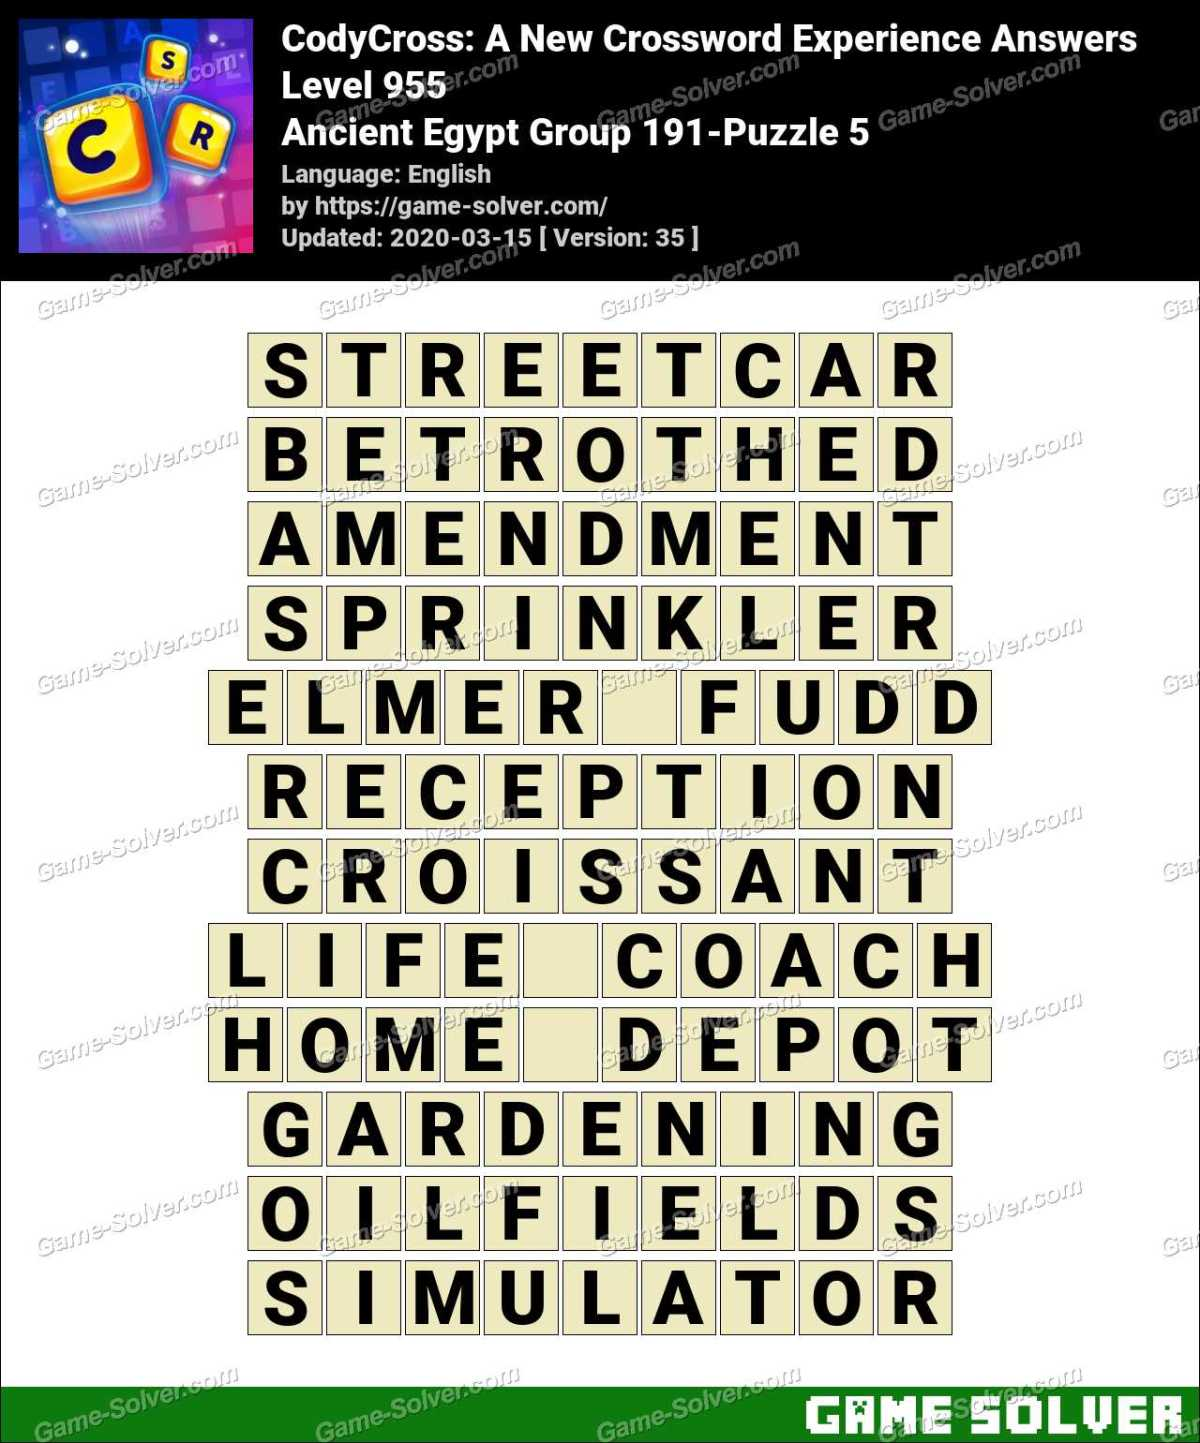 CodyCross Ancient Egypt Group 191-Puzzle 5 Answers